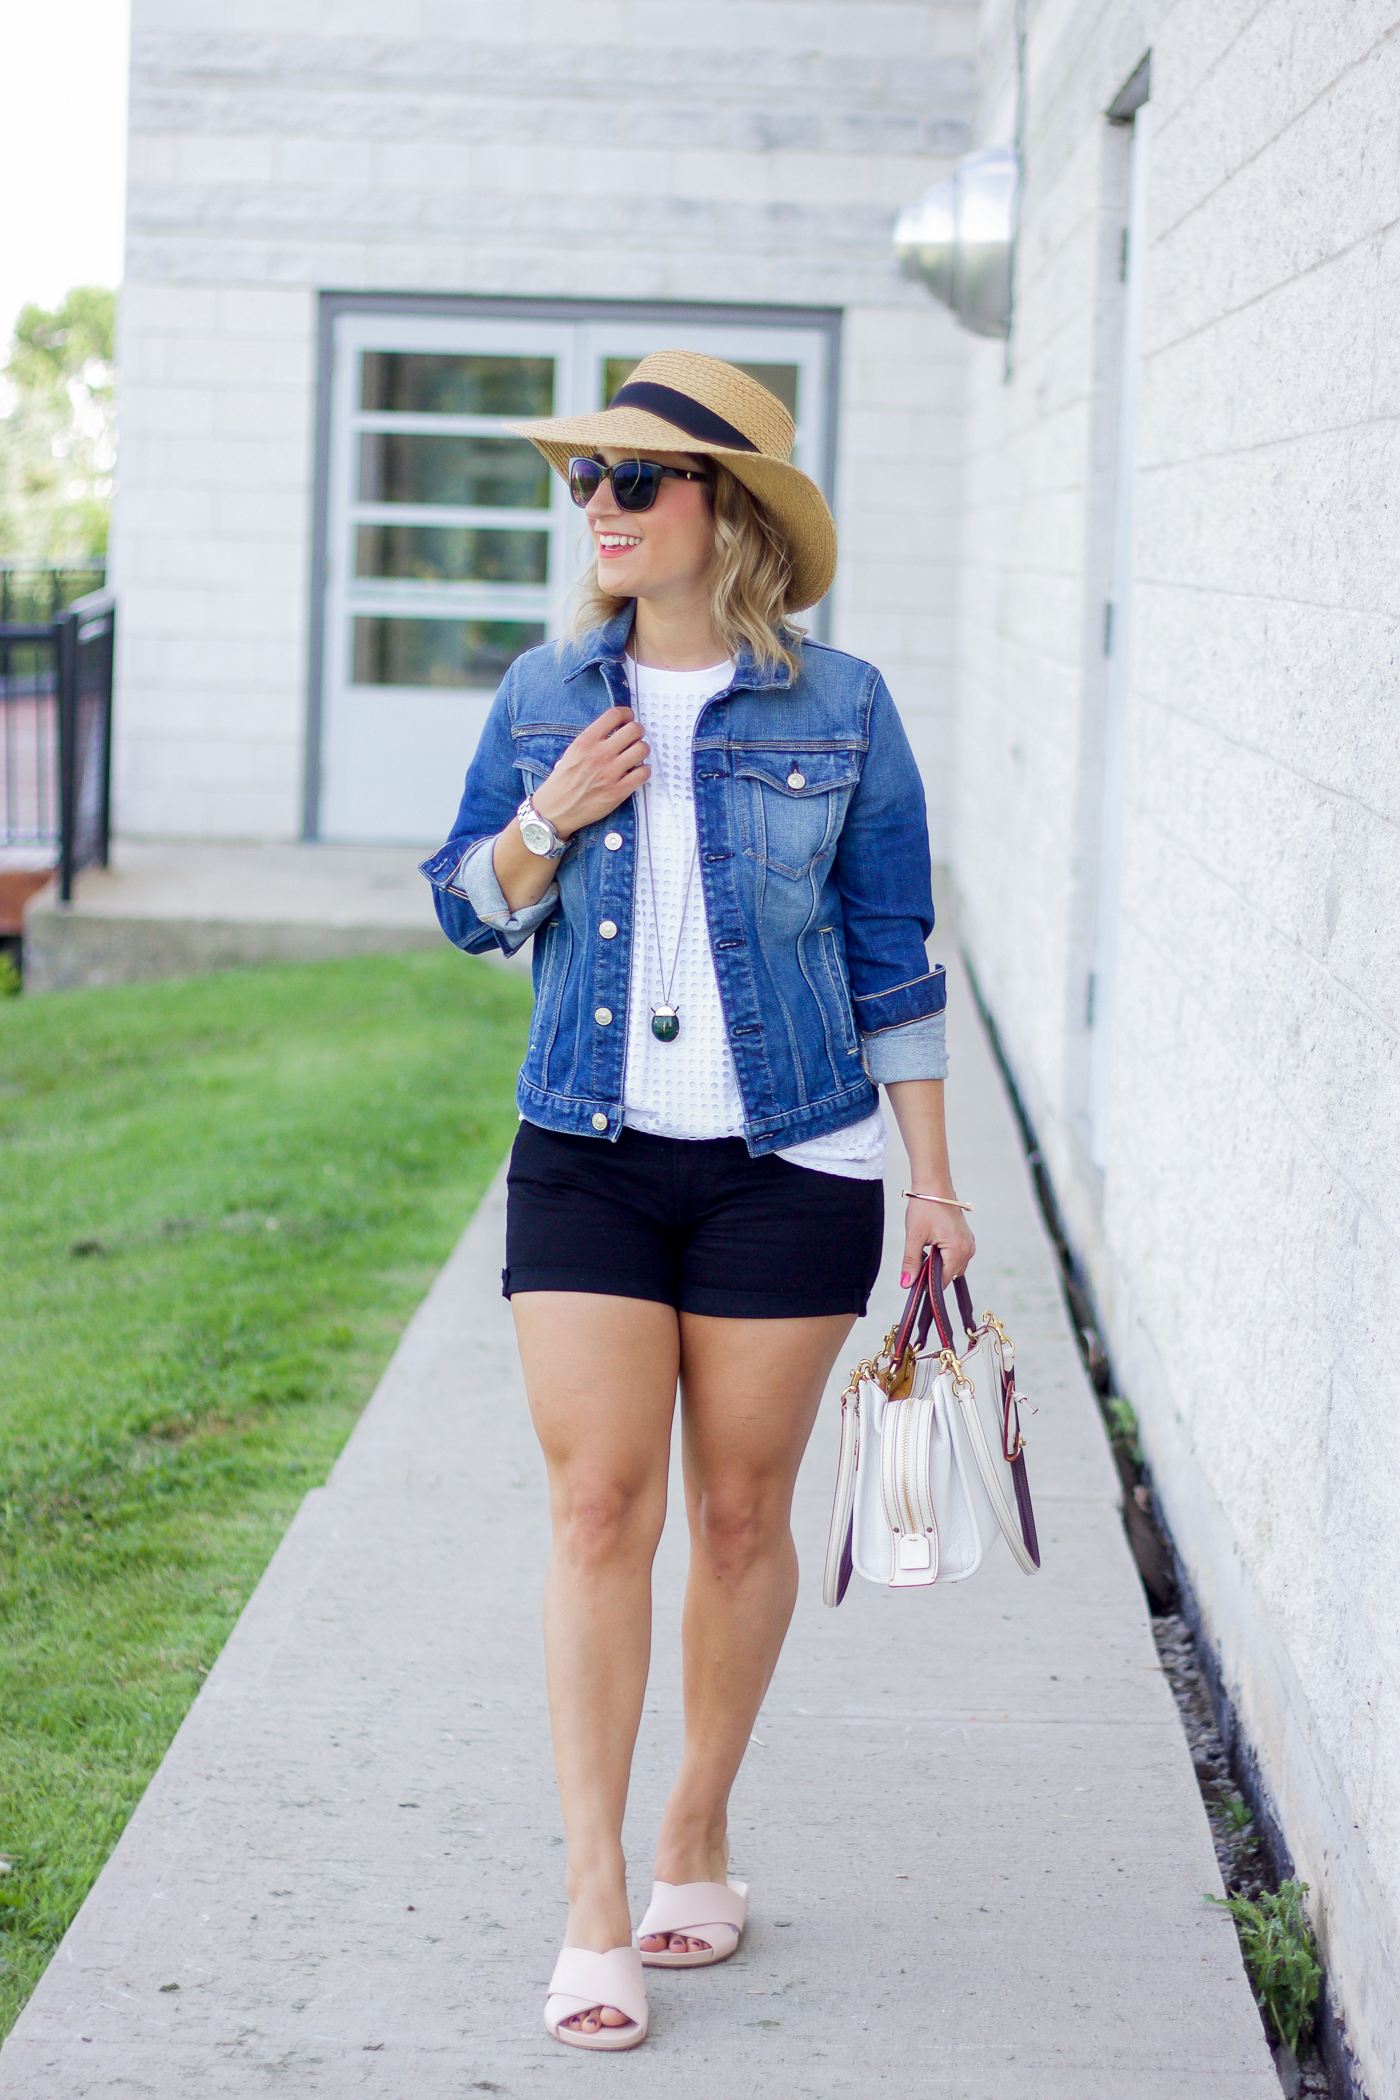 Summer outfit by petite fashion blogger, Jackie of Something About That, wearing black denim shorts with a jean jacket, textured white t-shirt and oversized hat